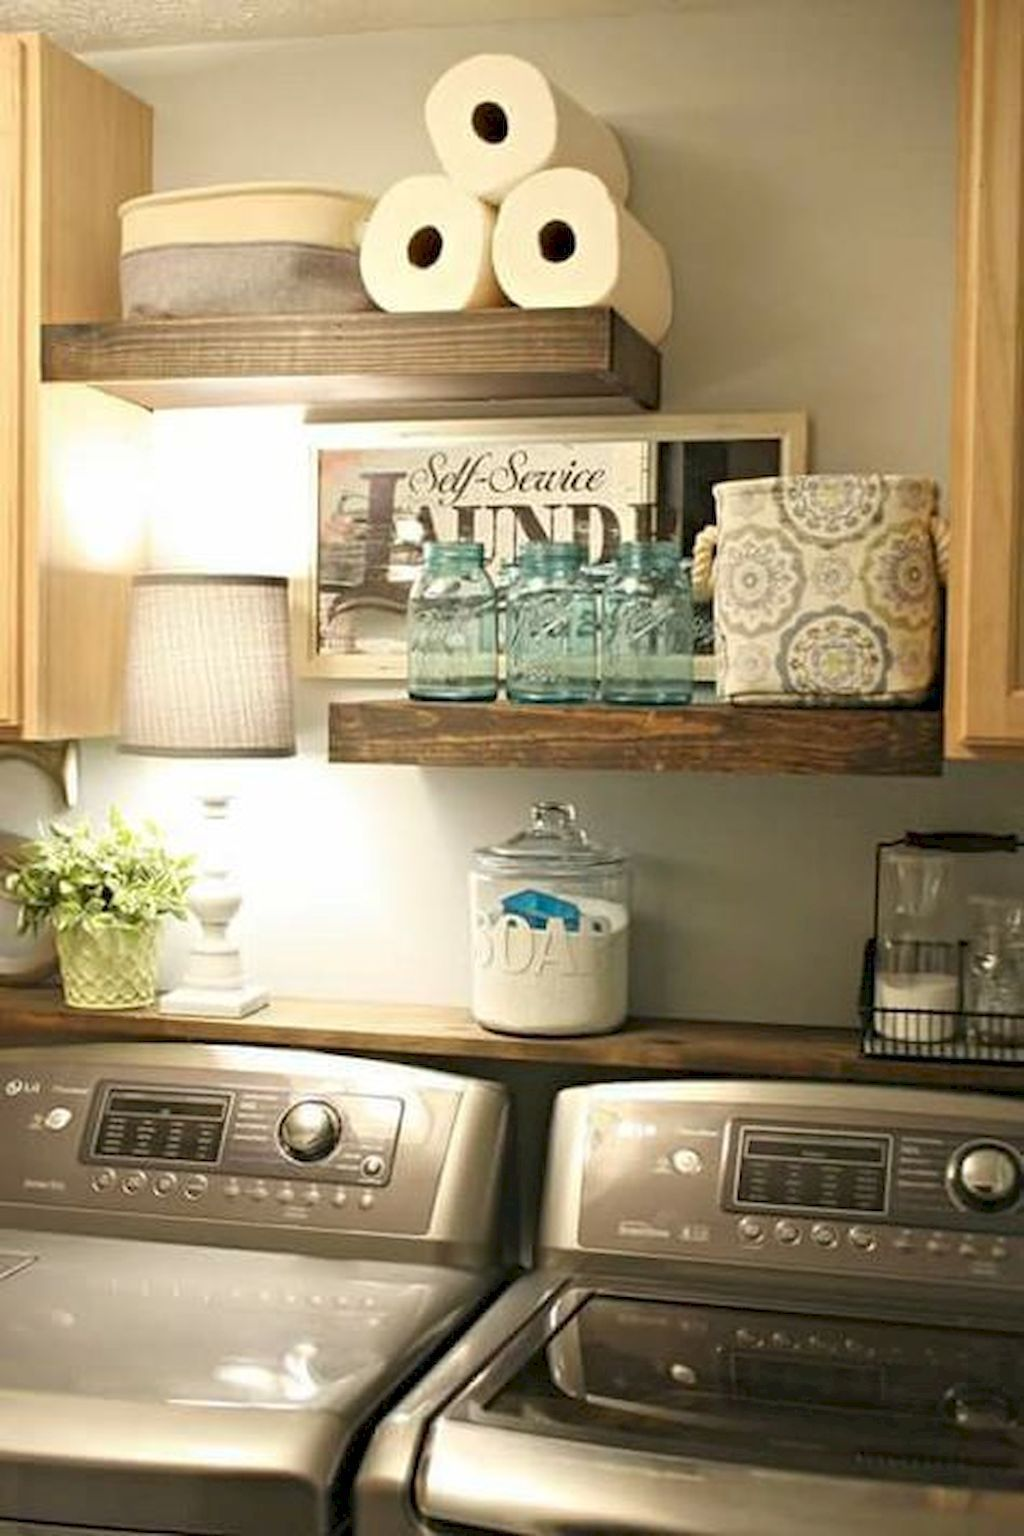 modern farmhouse laundry room ideas 24 with images on extraordinary small laundry room design and decorating ideas modest laundry space id=39353